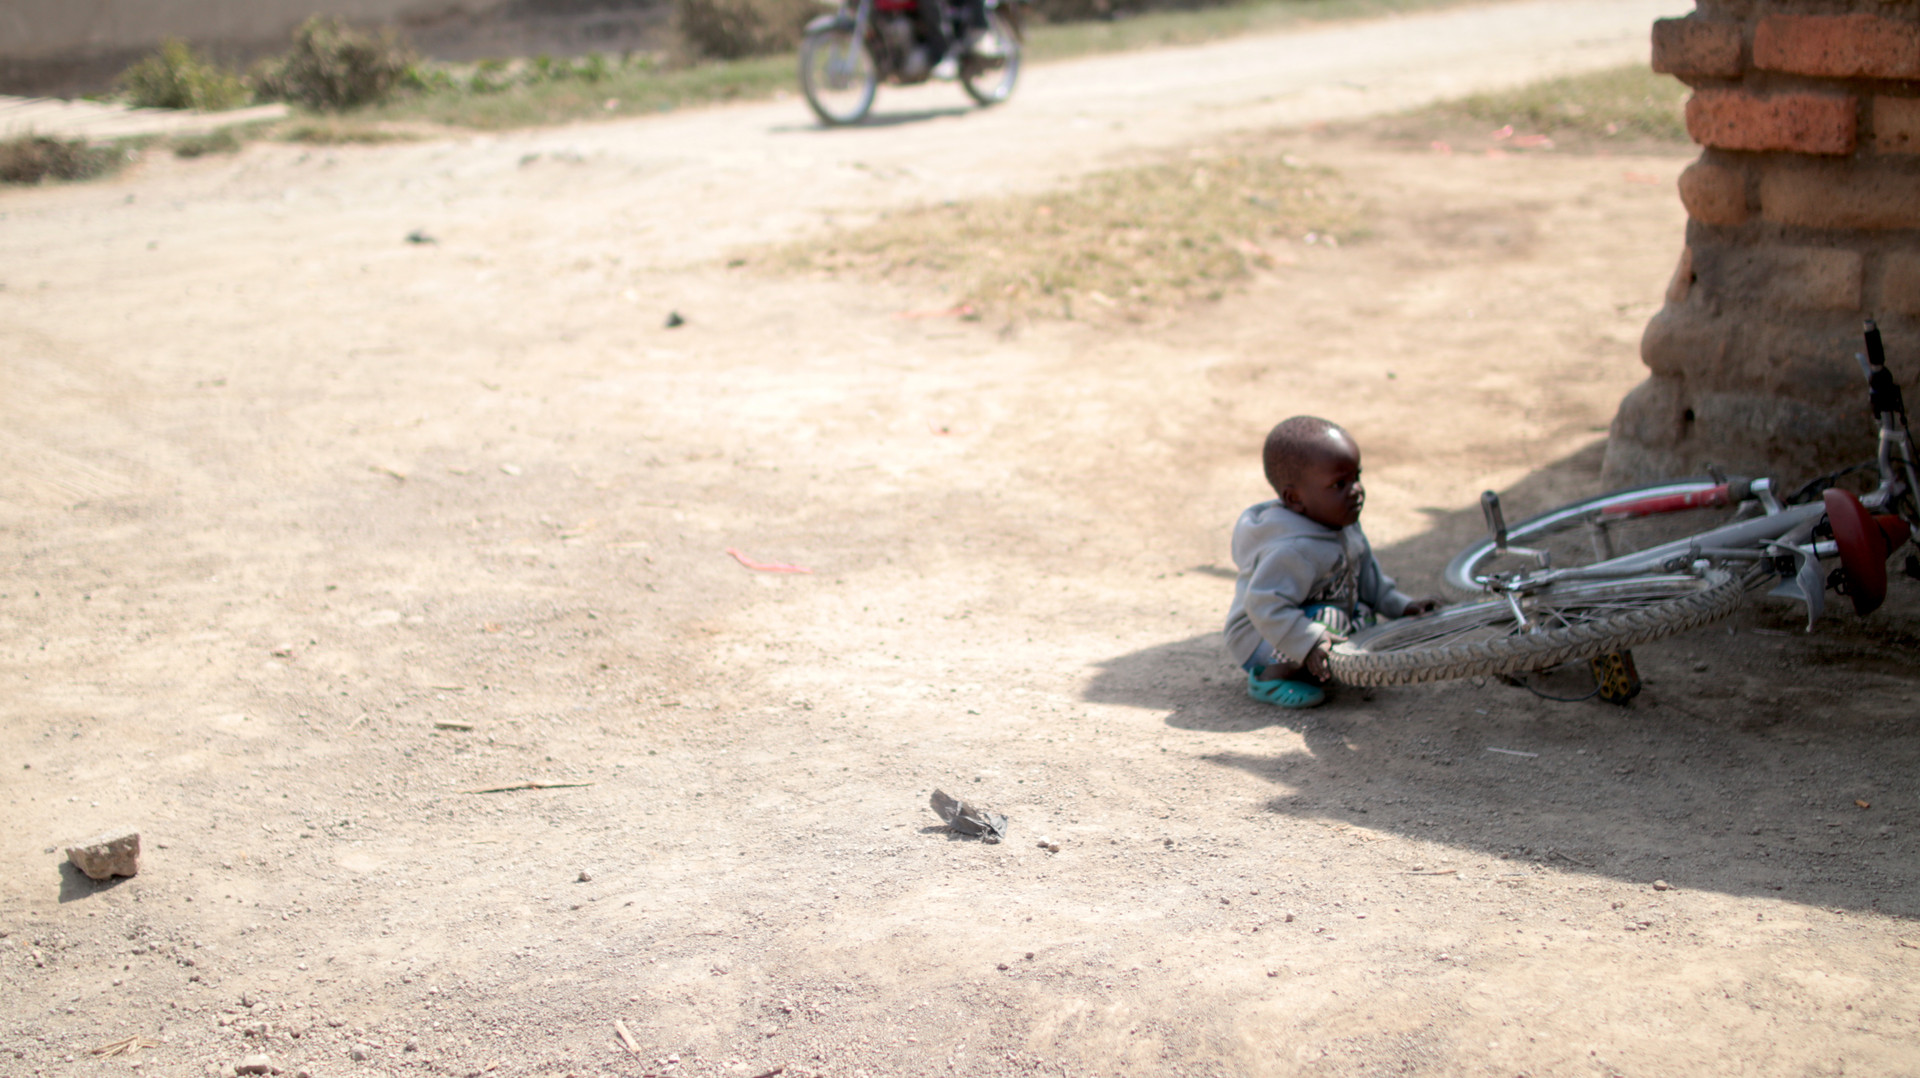 A young kiddo playing with a bicycle in the streets of Mbeya